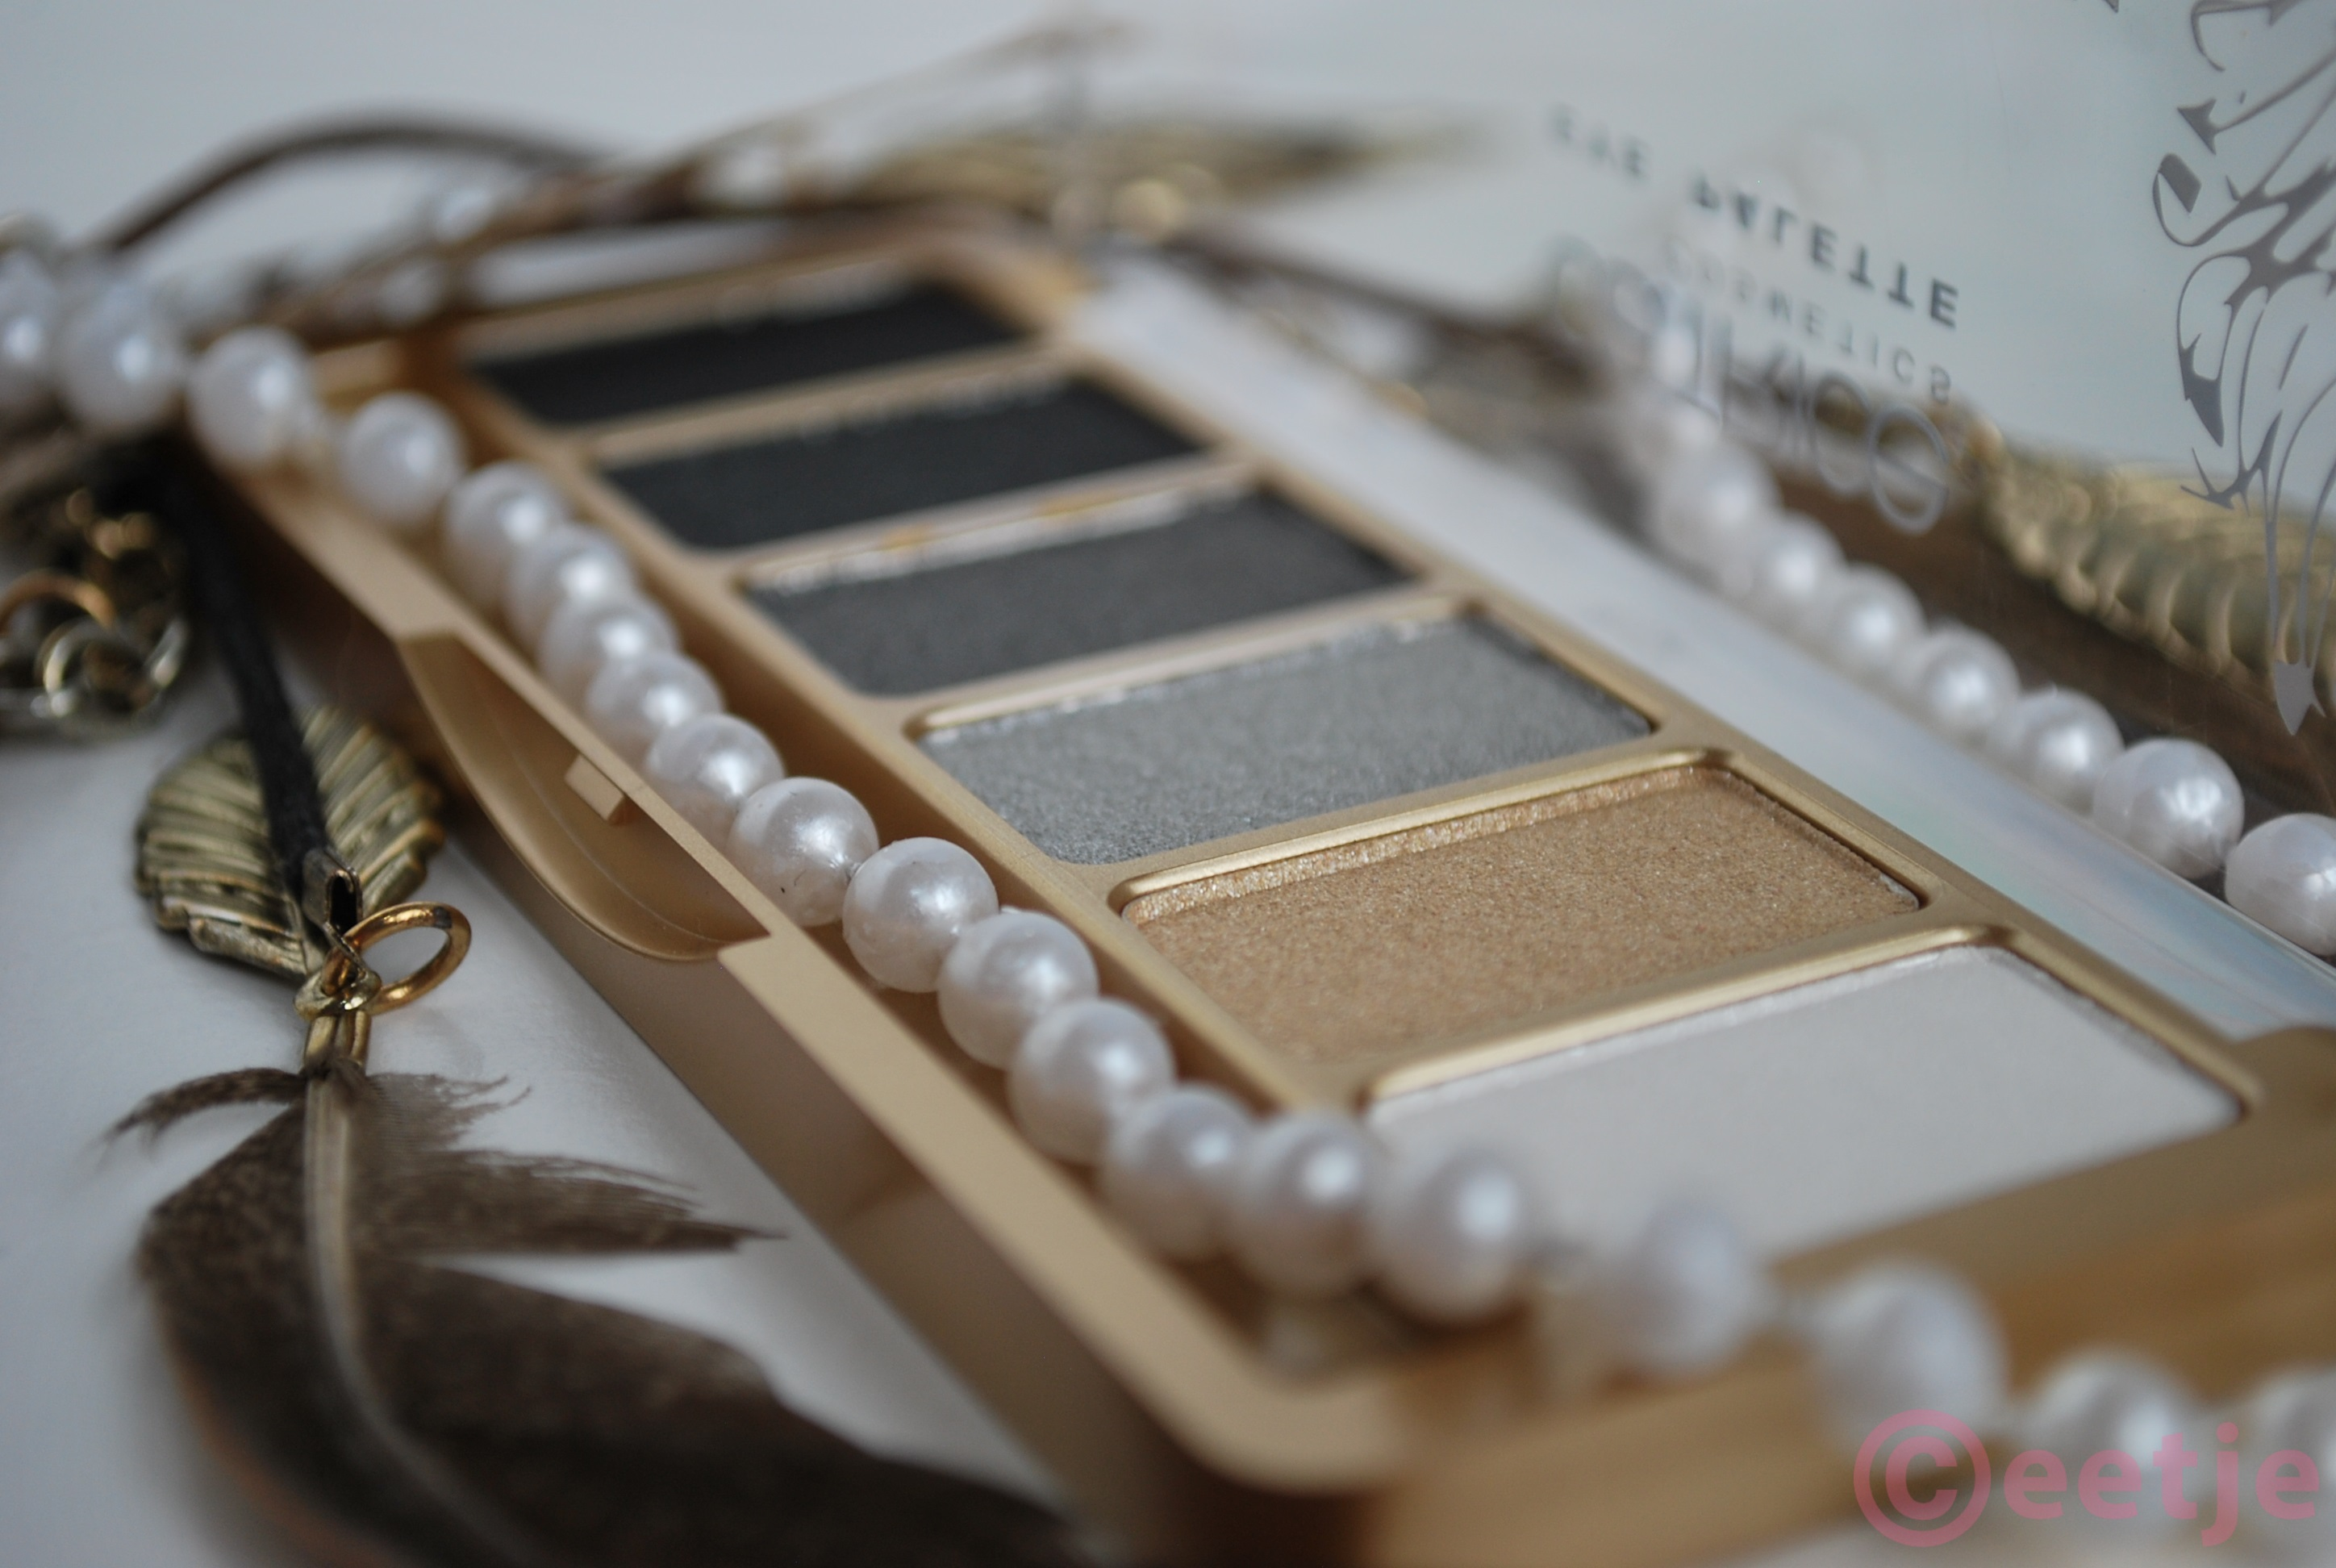 Review Catrice feathers and pearls eyeshadow palette